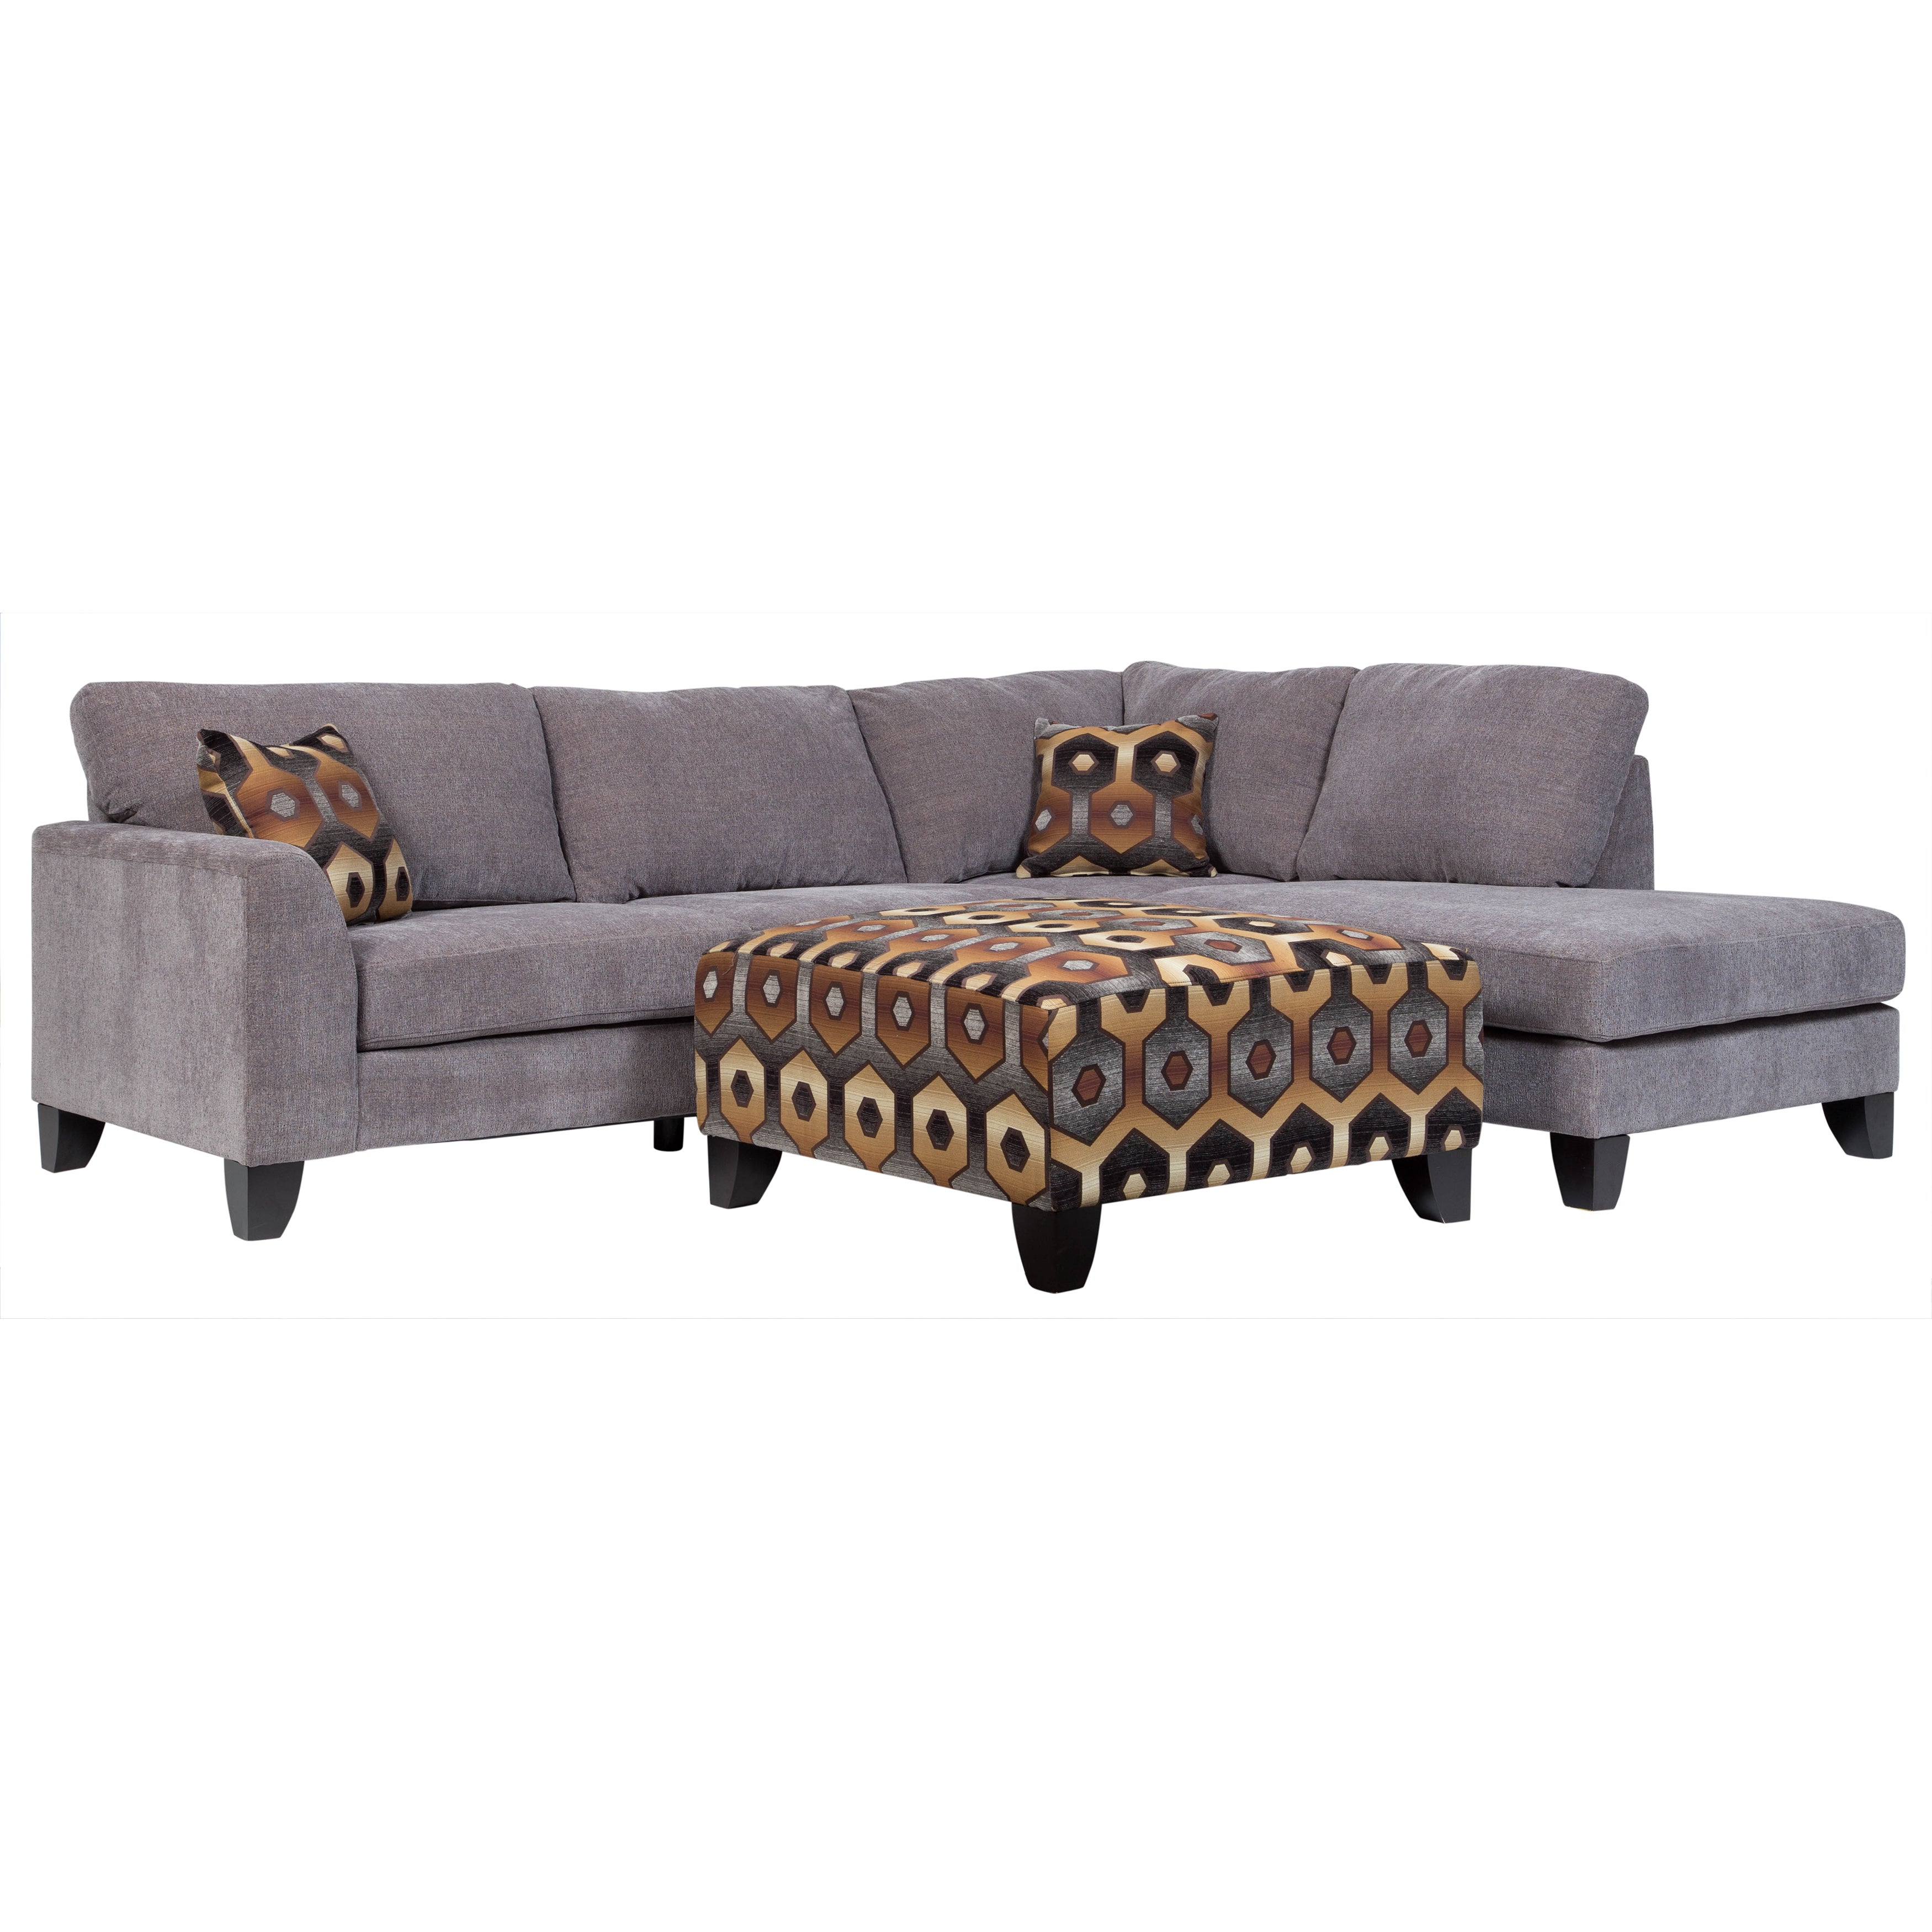 cheap interesting sofas ottoman sectional holders recliners with cup on used and